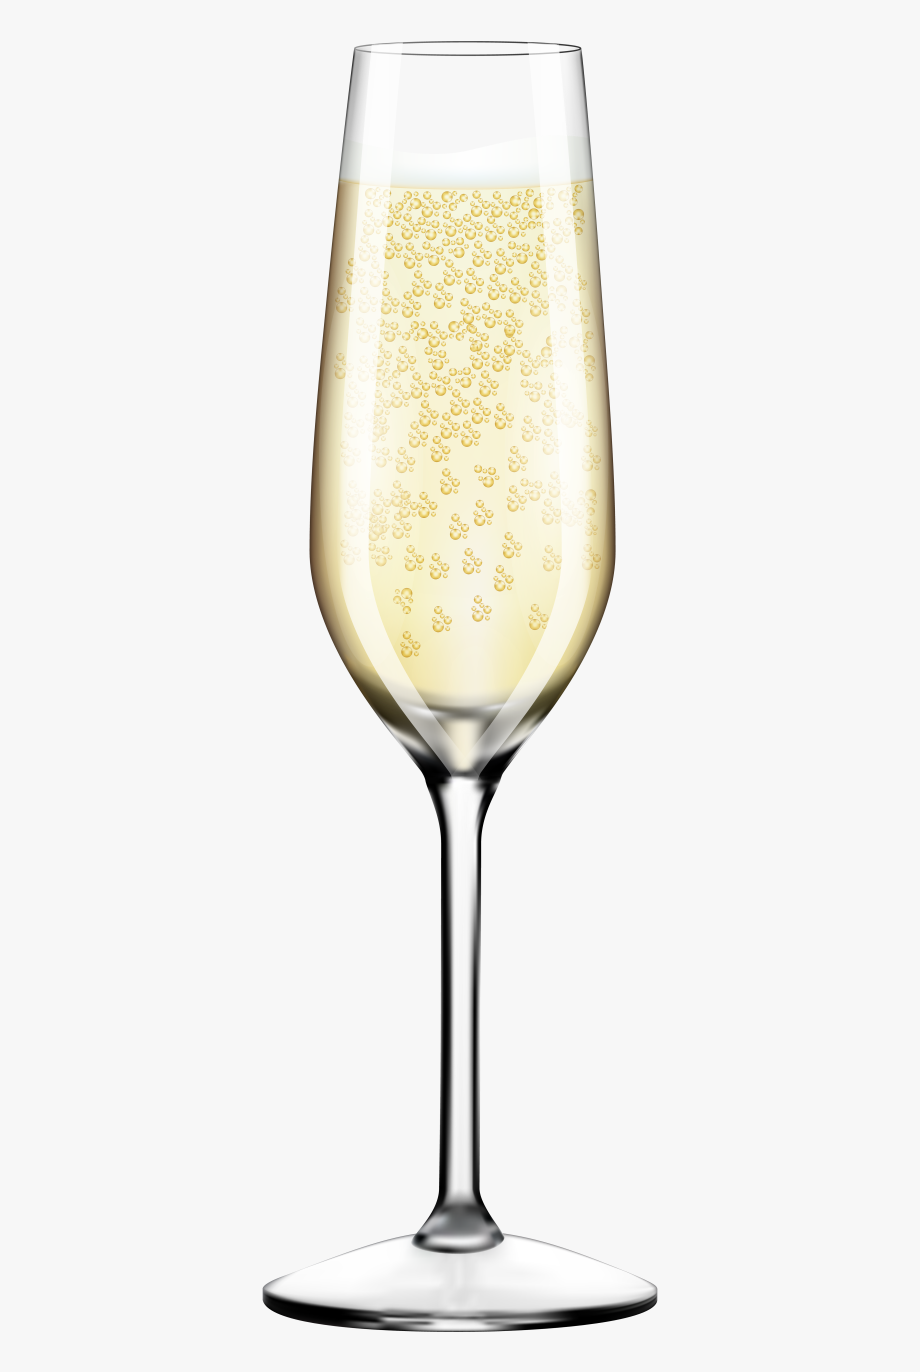 Champagne glass clipart png clip free download Champagne Glass Png Clip Art Image - Champagne Glass Png Transparent ... clip free download